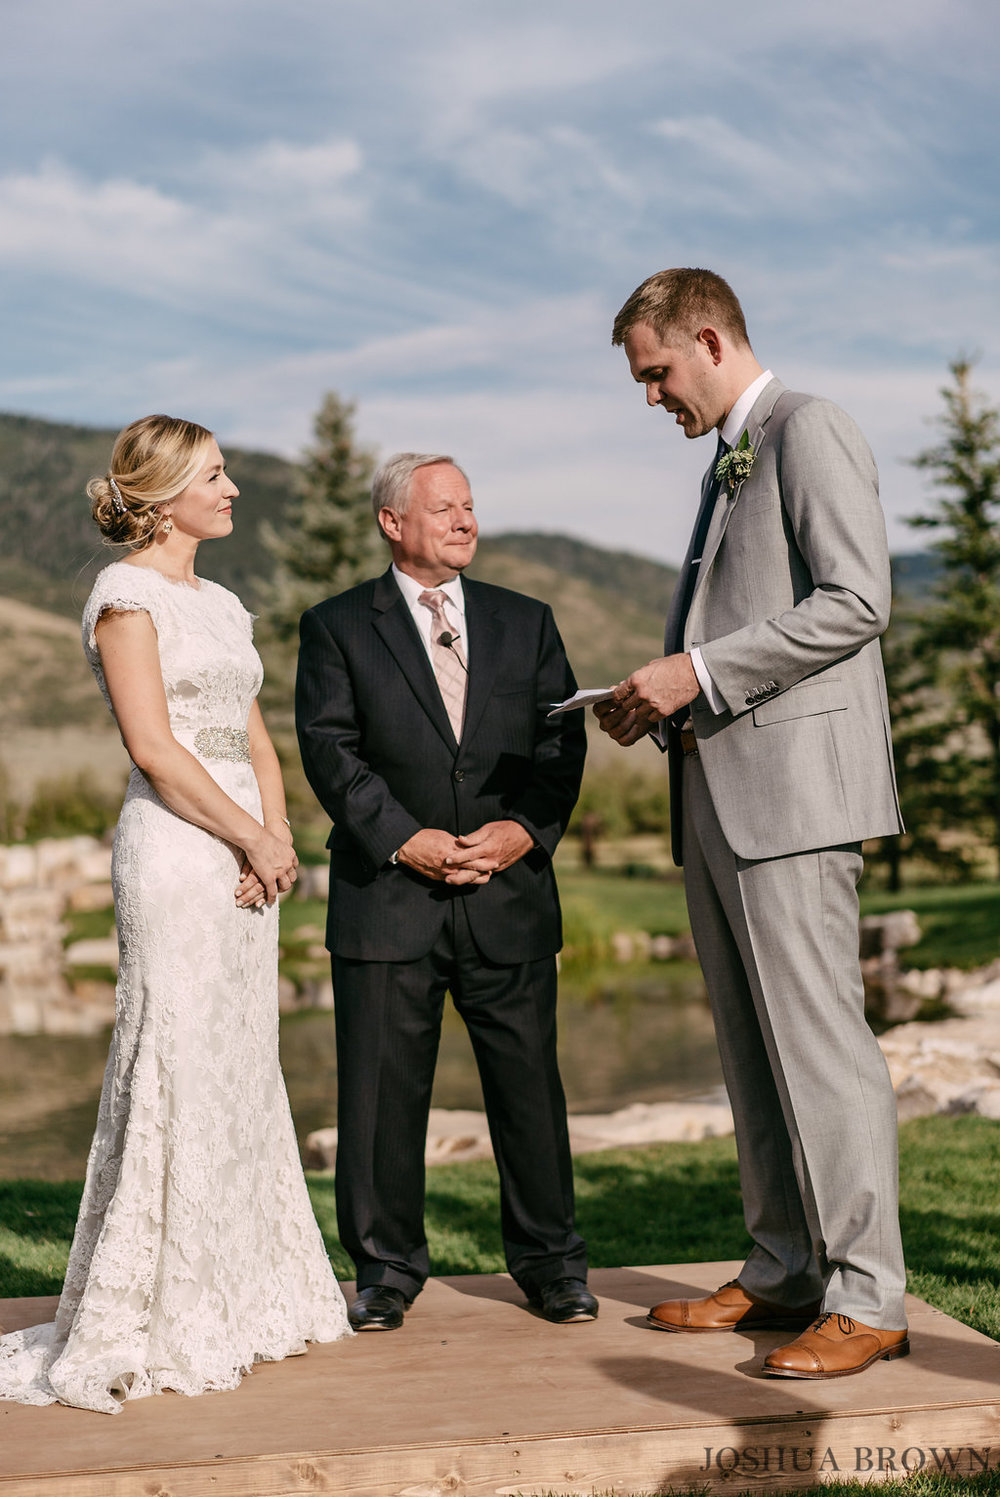 Twilight Moon Ranch Wedding | Joshua Brown Photography | Michelle Leo Events | Utah Wedding Design and Planning